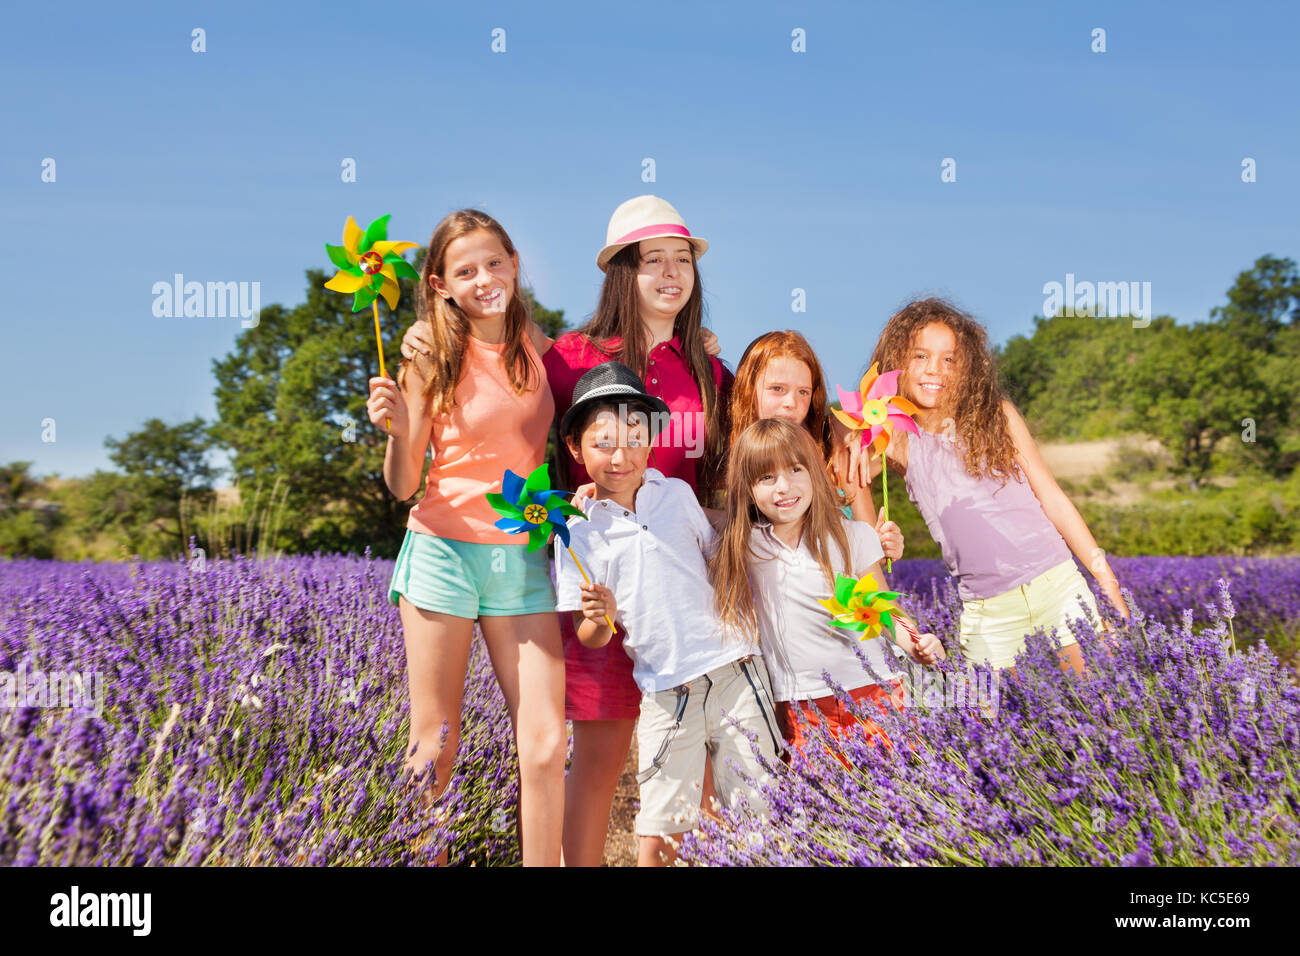 Happy preteen boys and girls playing with pinwheels in lavender field - Stock Image